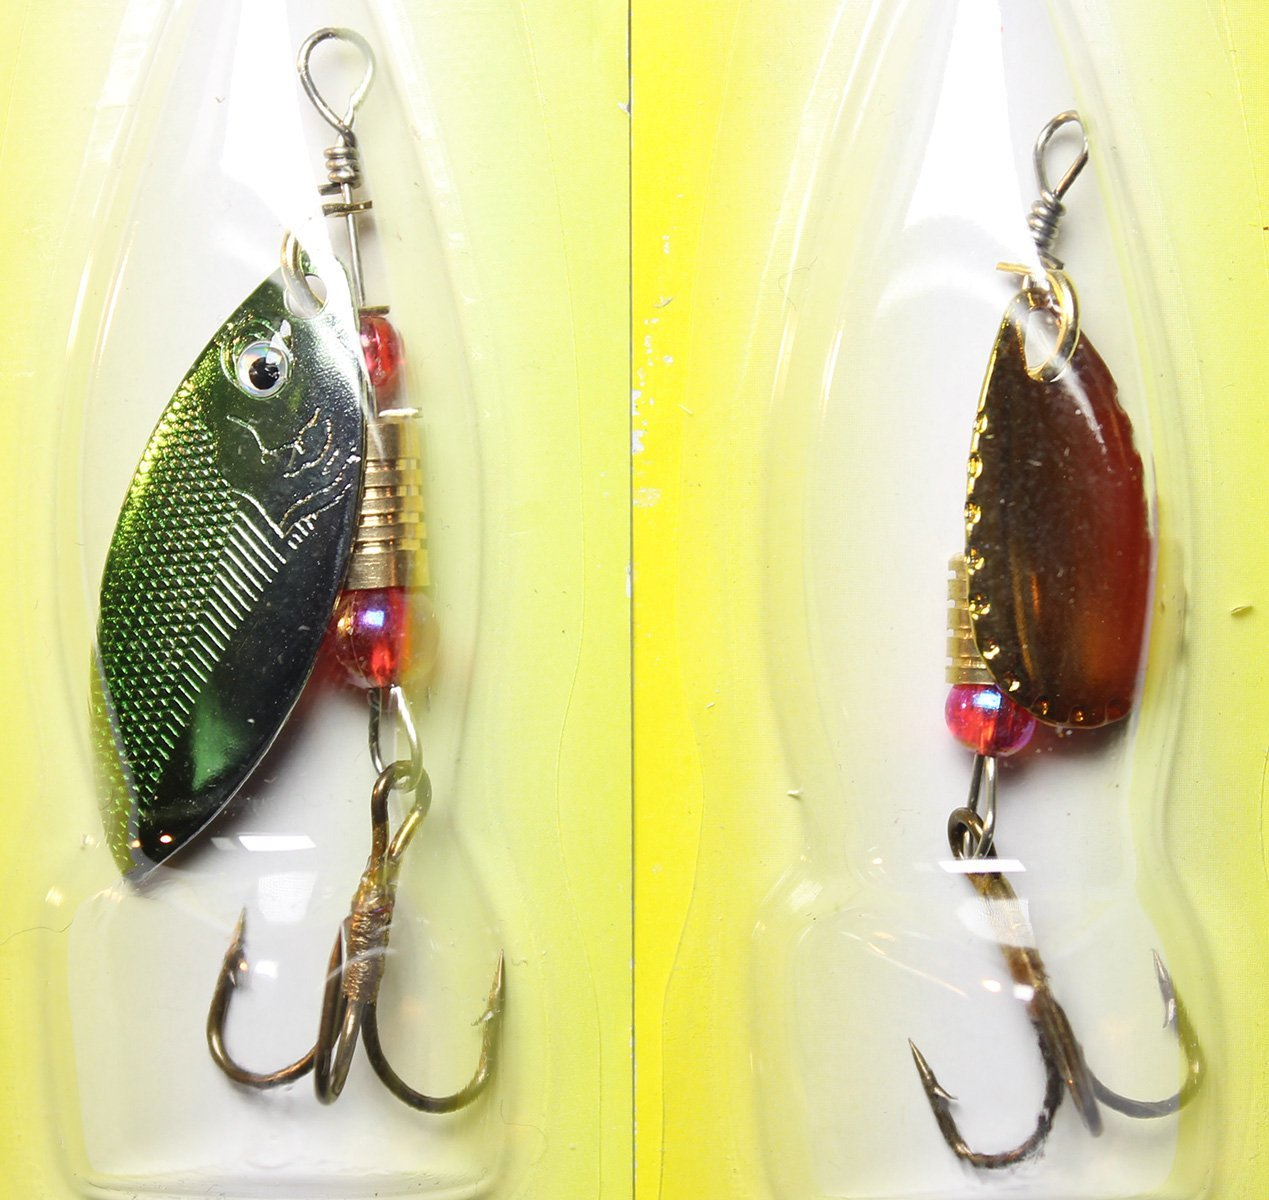 manufactured fishing lure